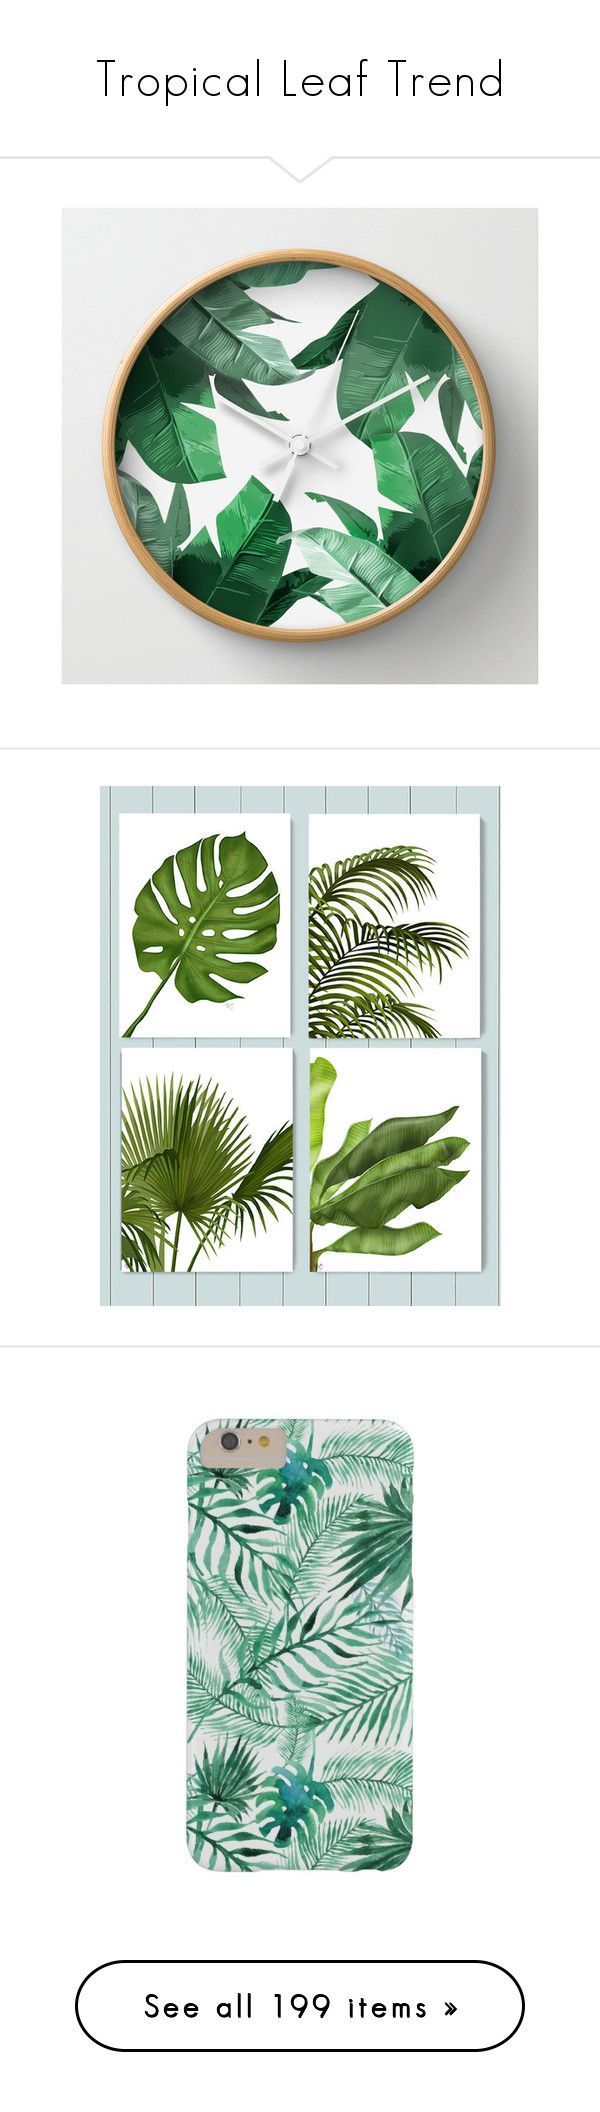 """Tropical Leaf Trend"" by marnie1979 ❤ liked on Polyvore featuring home, home decor, clocks, wall clocks, battery digital clock, battery powered digital wall clock, battery wall clocks, digital clock, battery operated wall clocks and wall art"